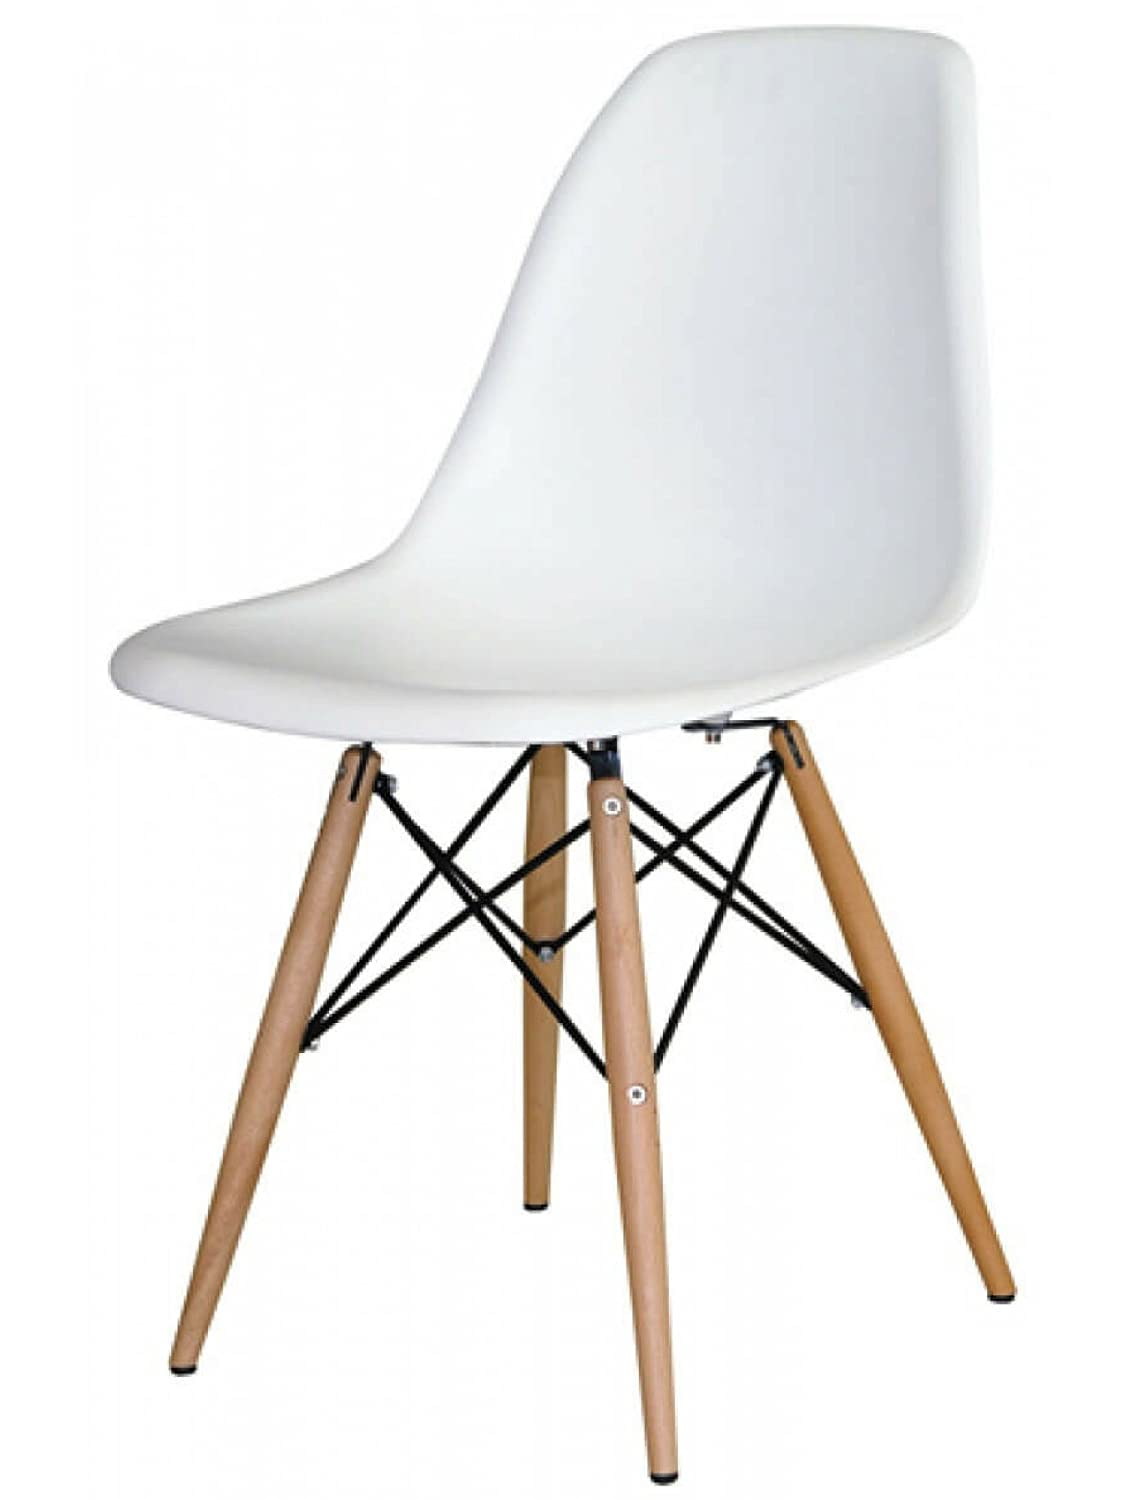 Awesome Amazon.com   Mid Century Modern Eames Style Chairs 4 Pack (White)   Chairs